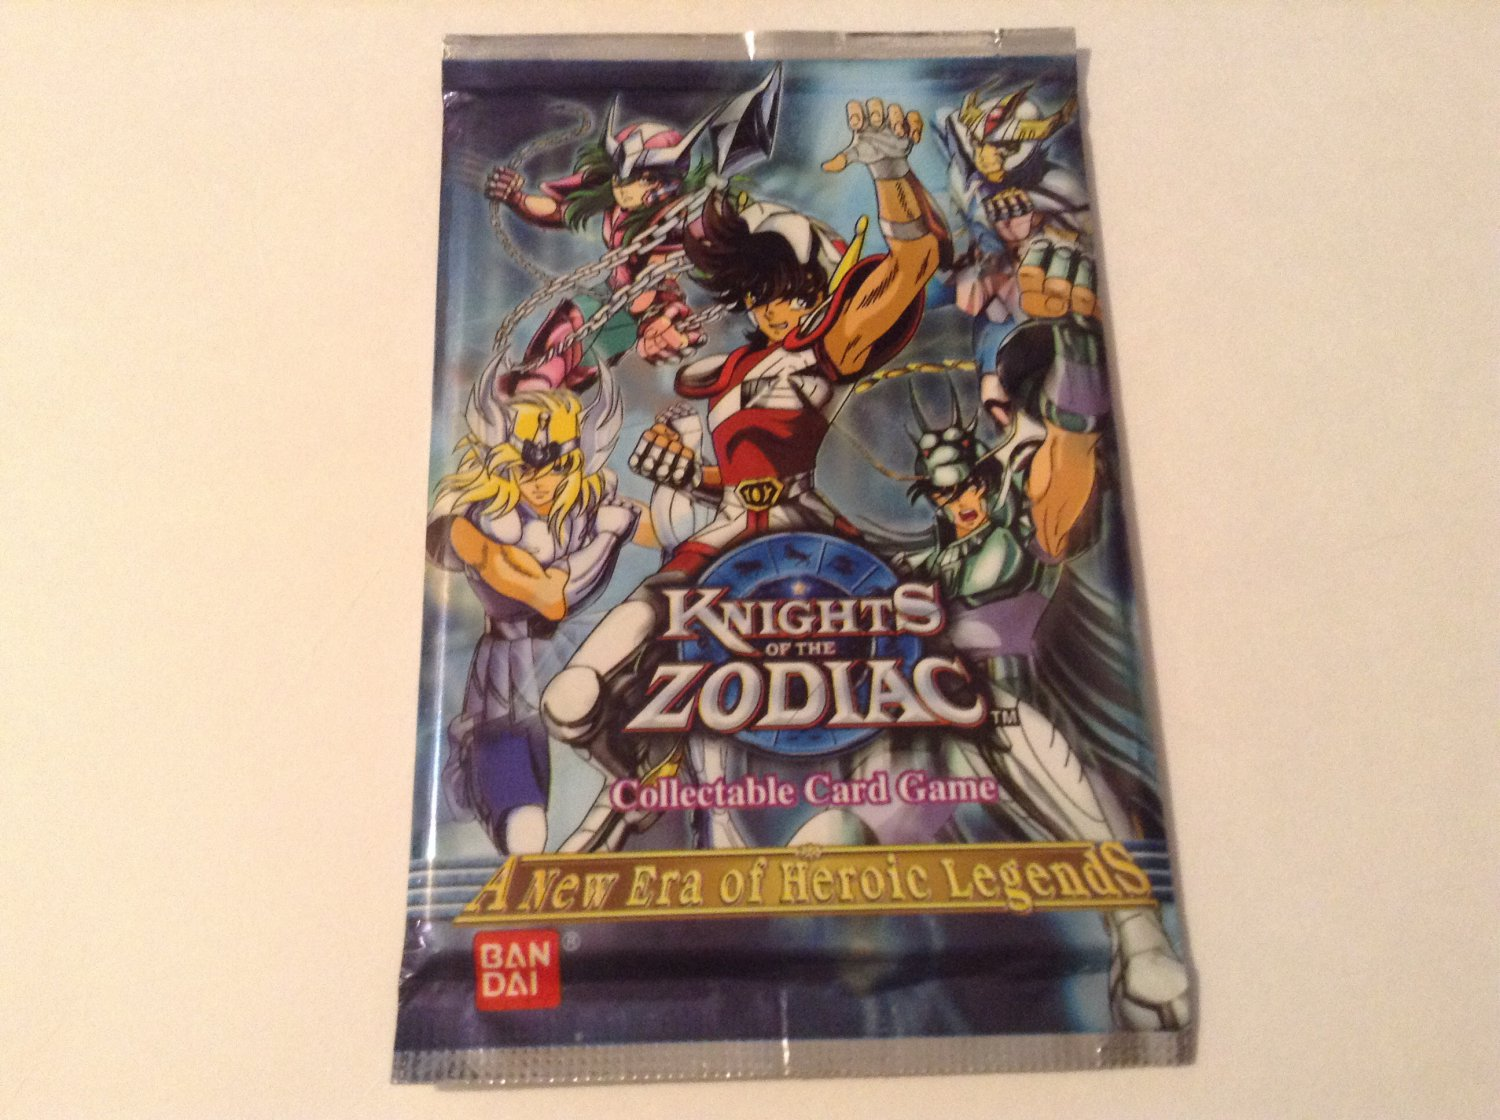 Knights of the Zodiac CCG A New Era of Heroic Legends Card Booster Pack